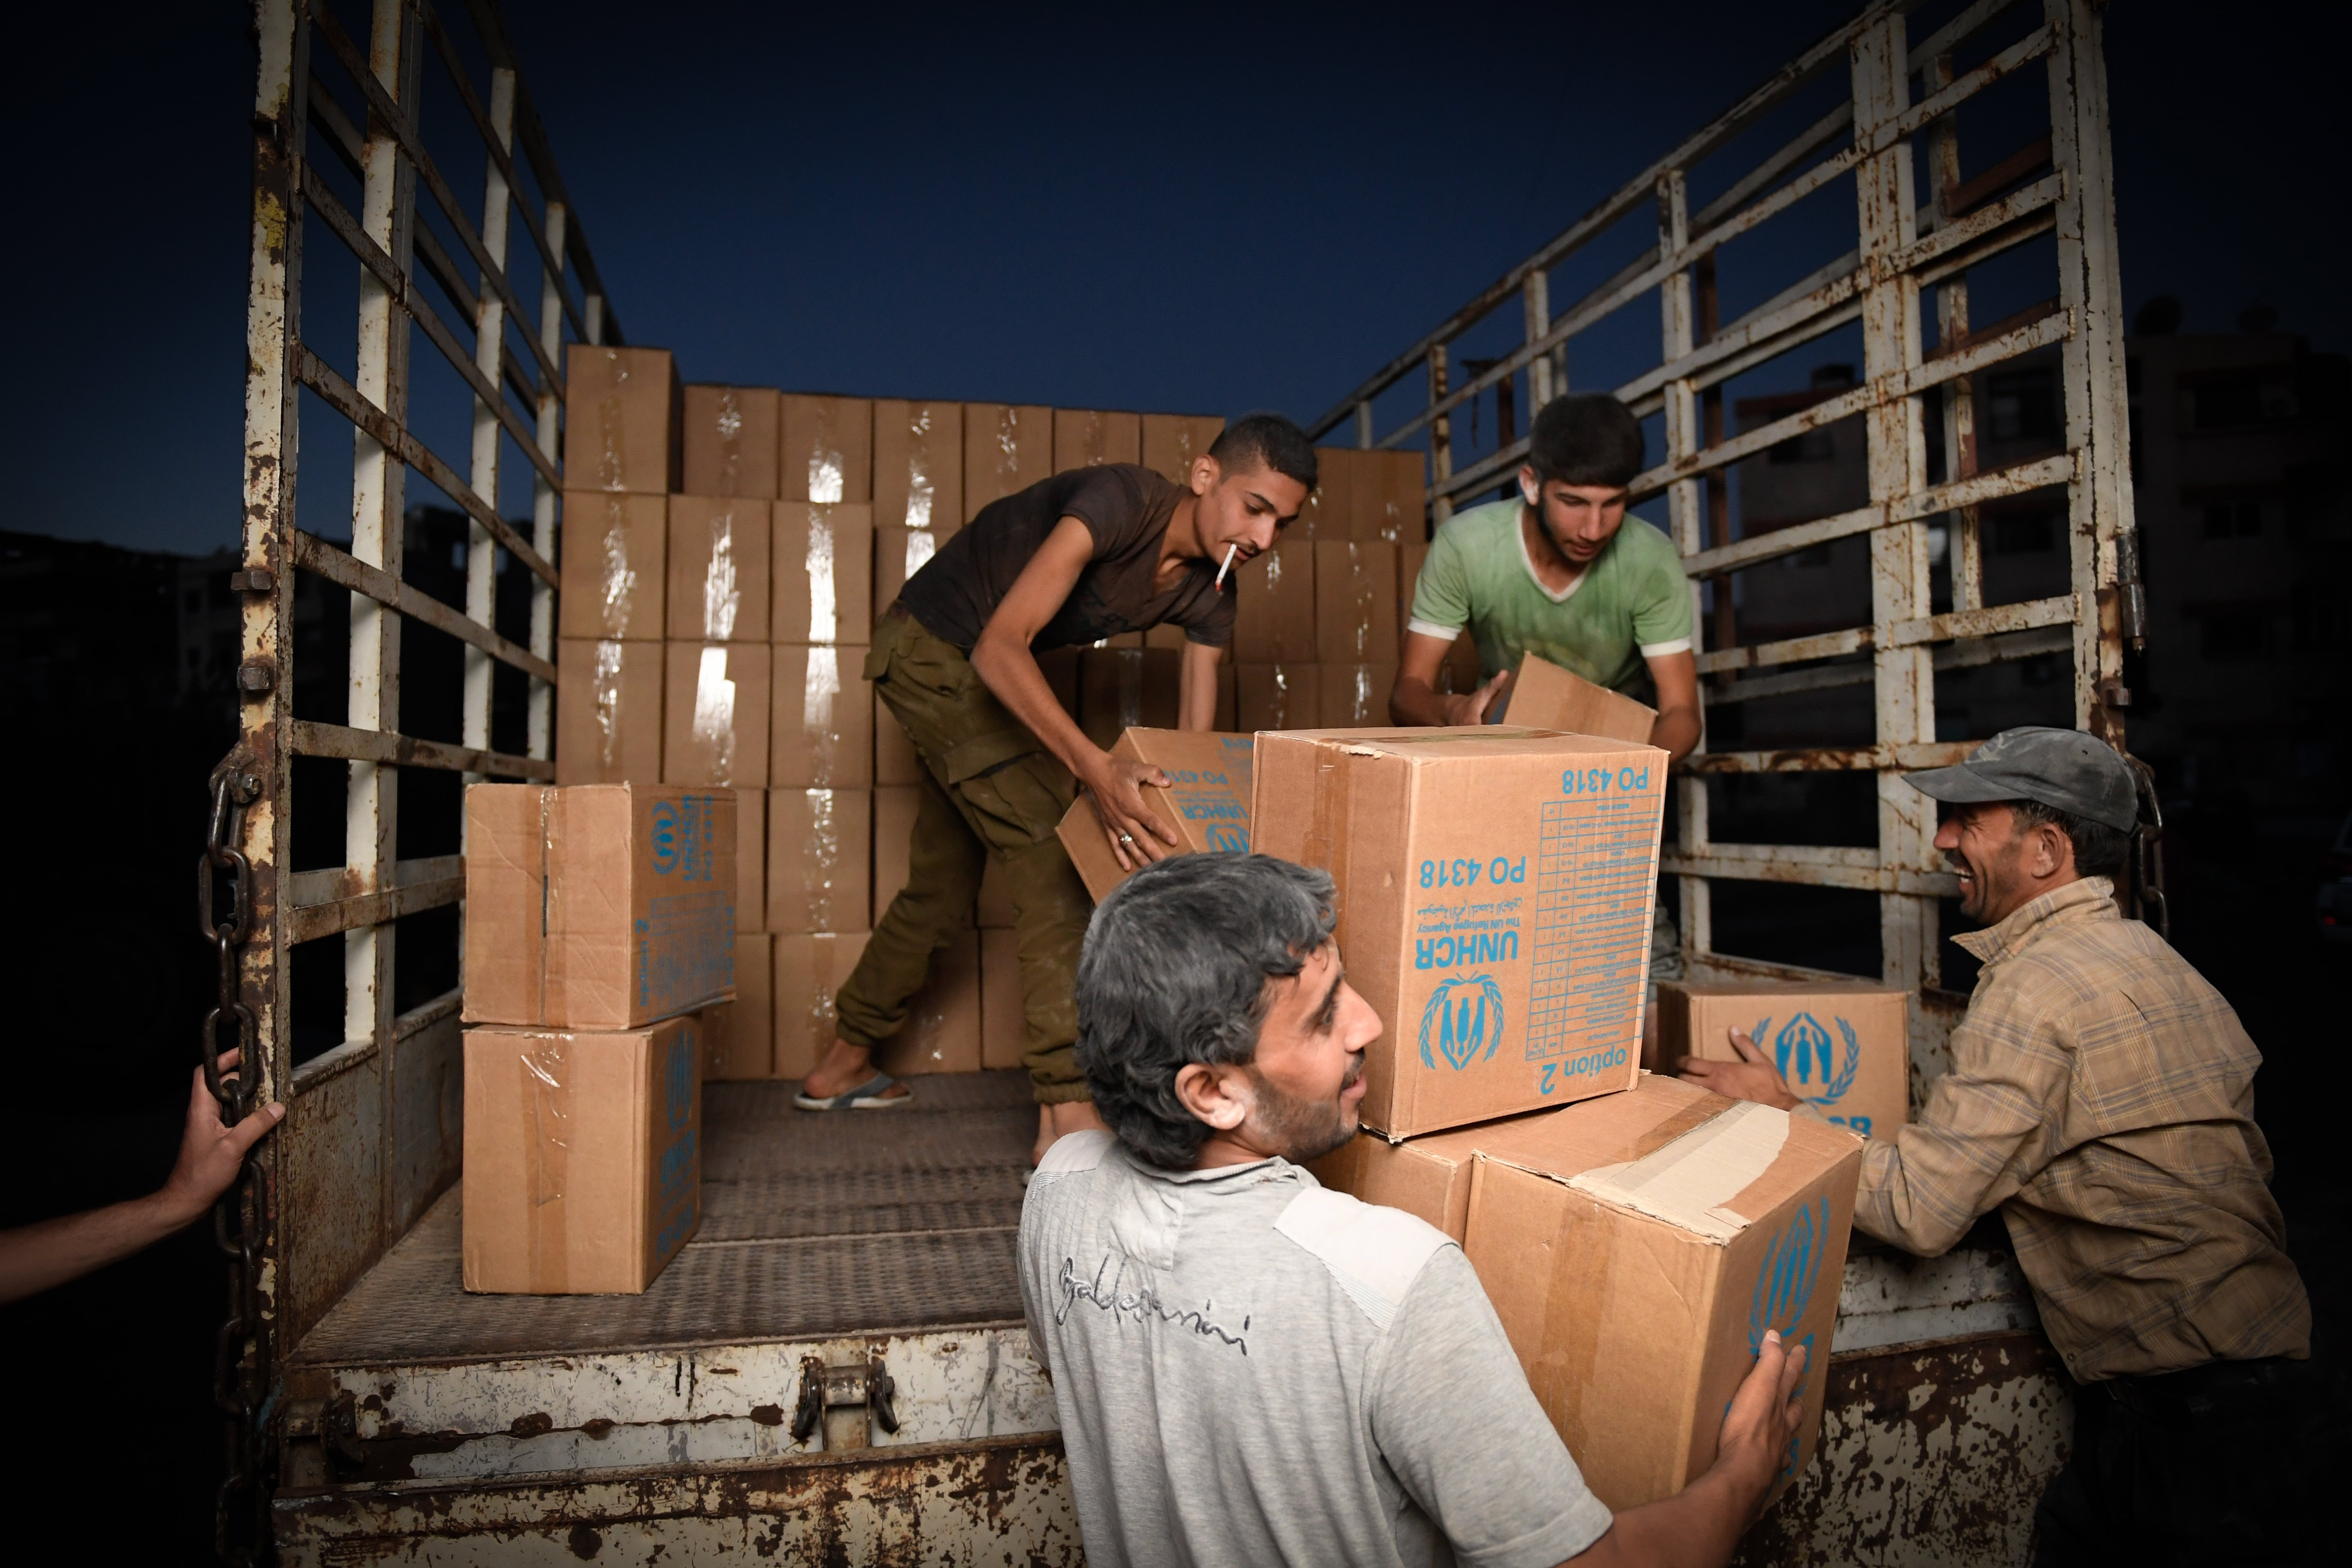 Volunteers and aid workers offload boxes of food and medicine from UN inter-agency trucks delivering desperately needed supplies to Mouadamiyeh in rural Damascus